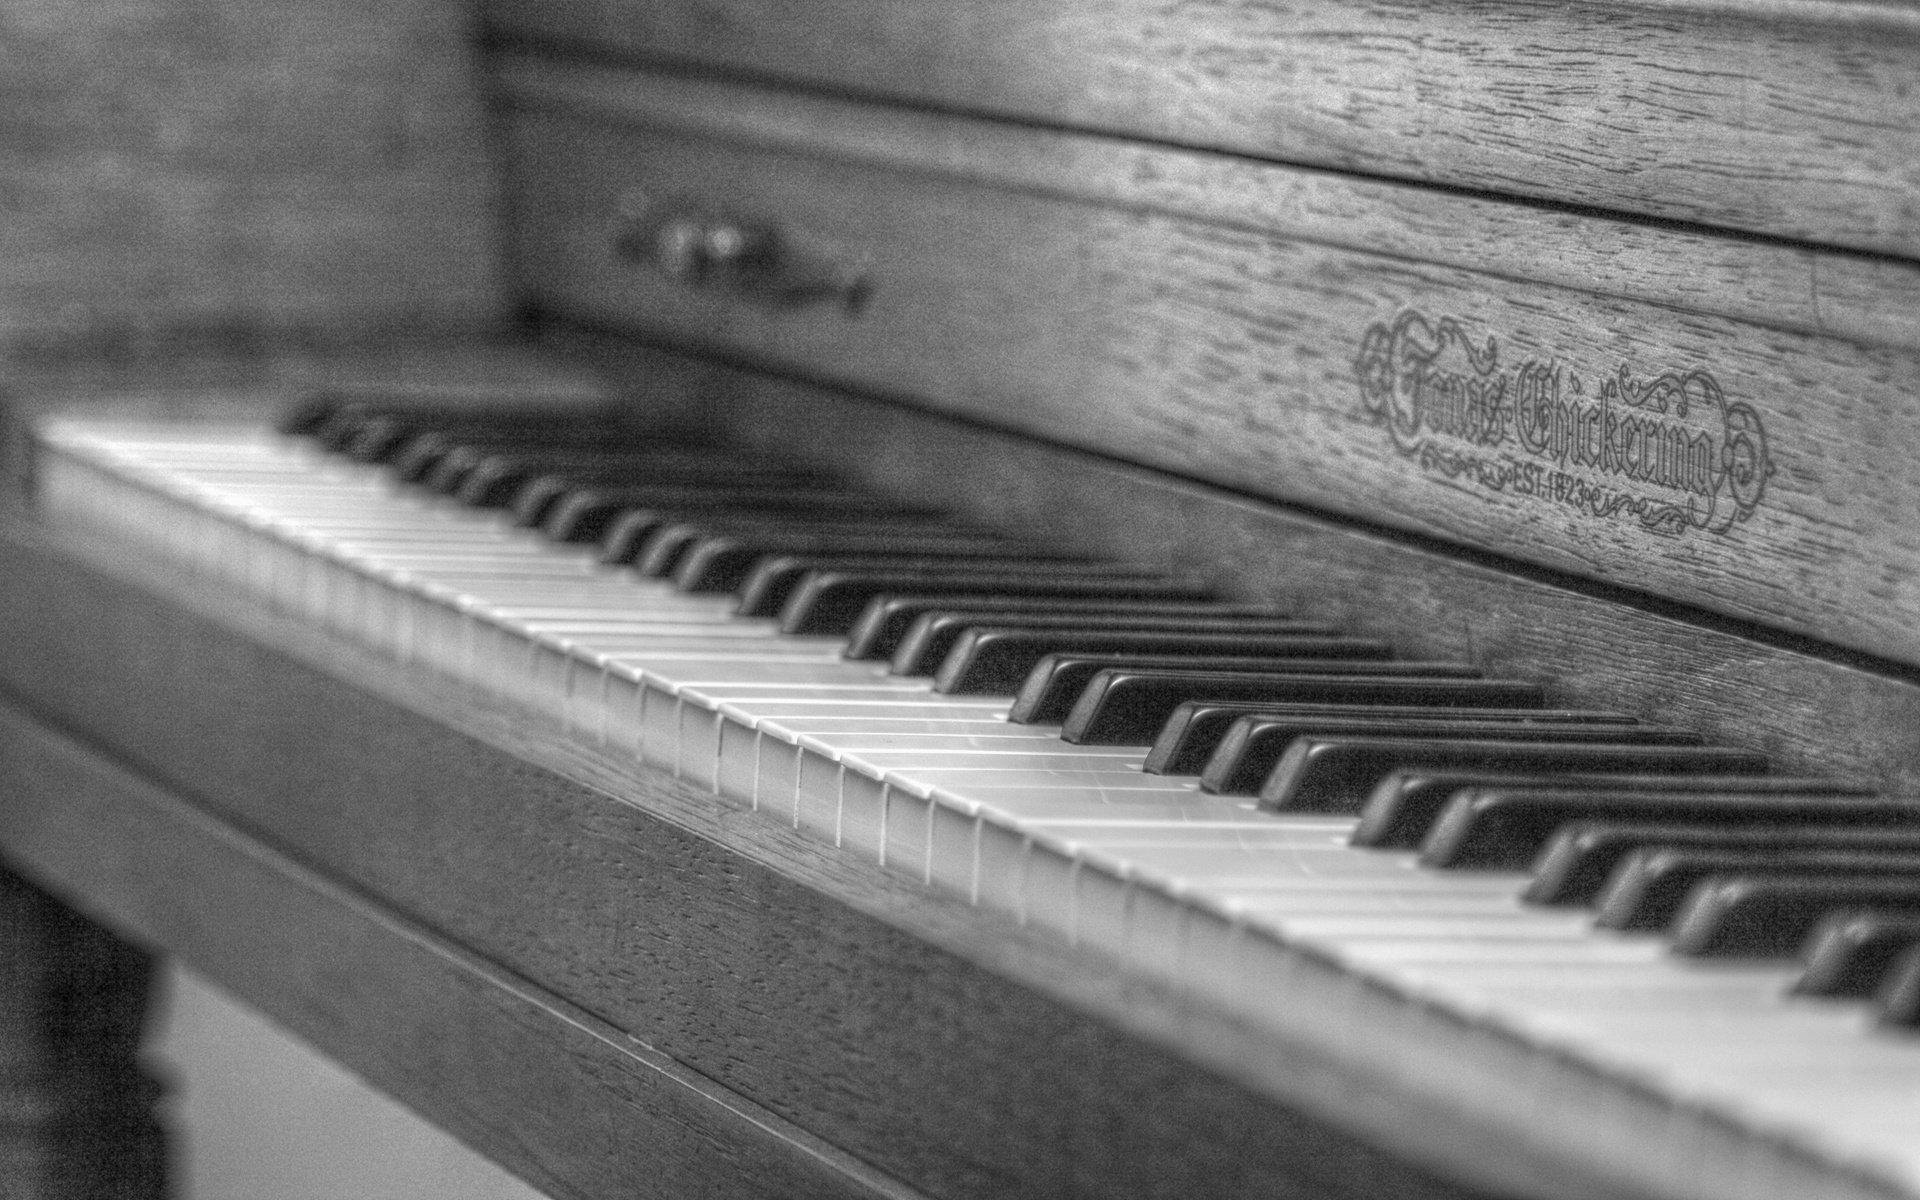 2560x1440 Preview Wallpaper Piano Hands Vintage Music Bw